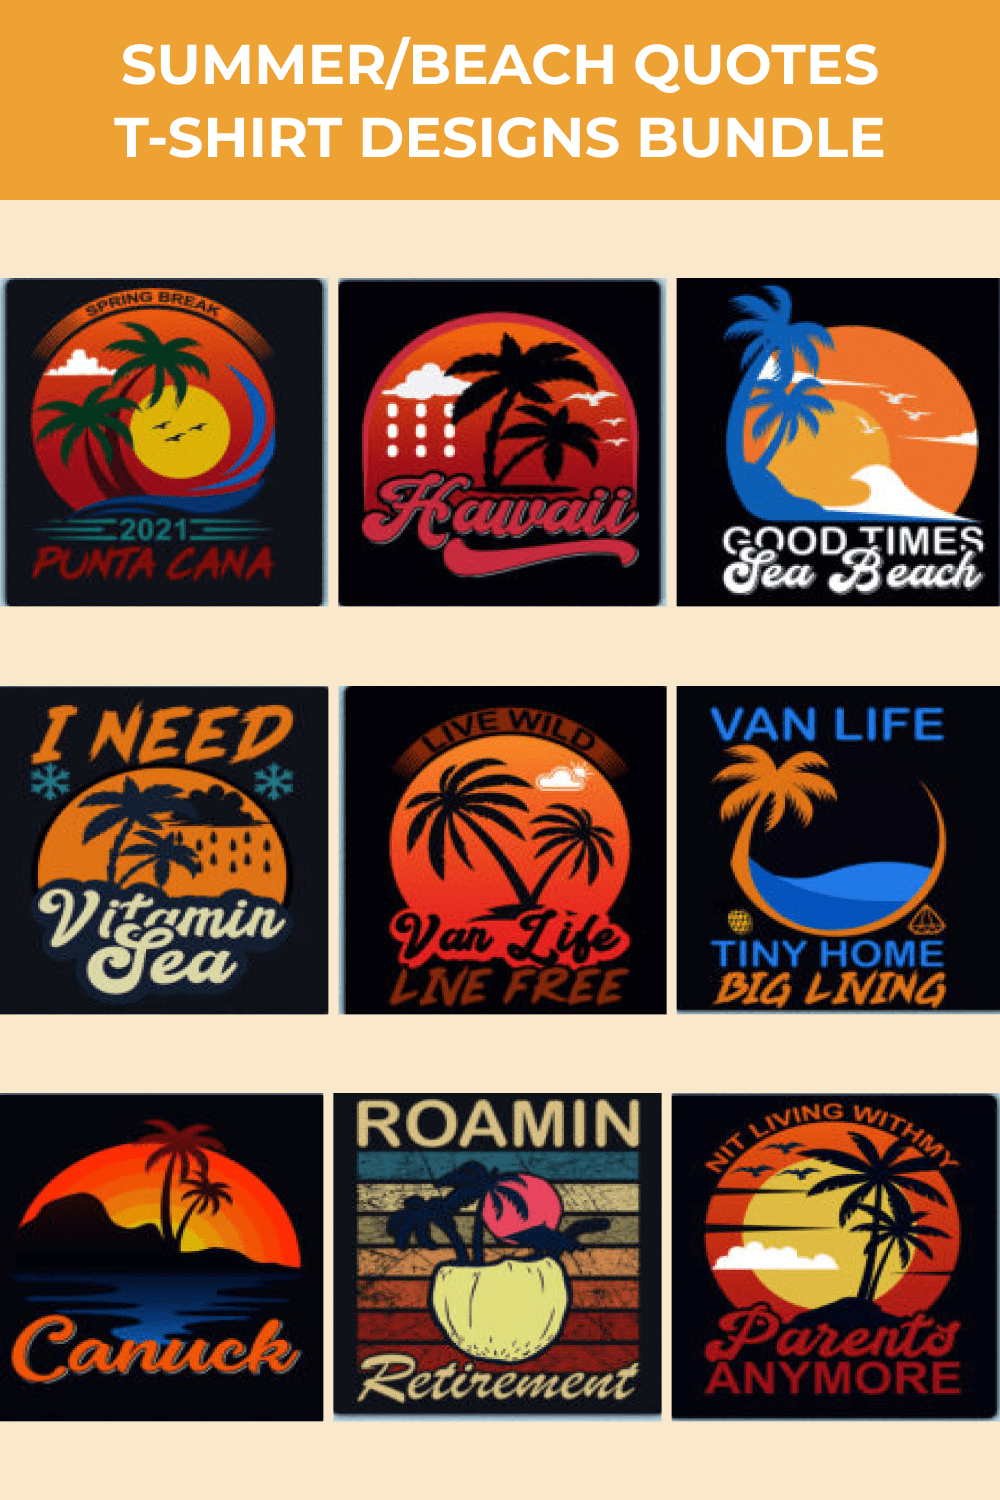 Several illustration options for T-shirts.